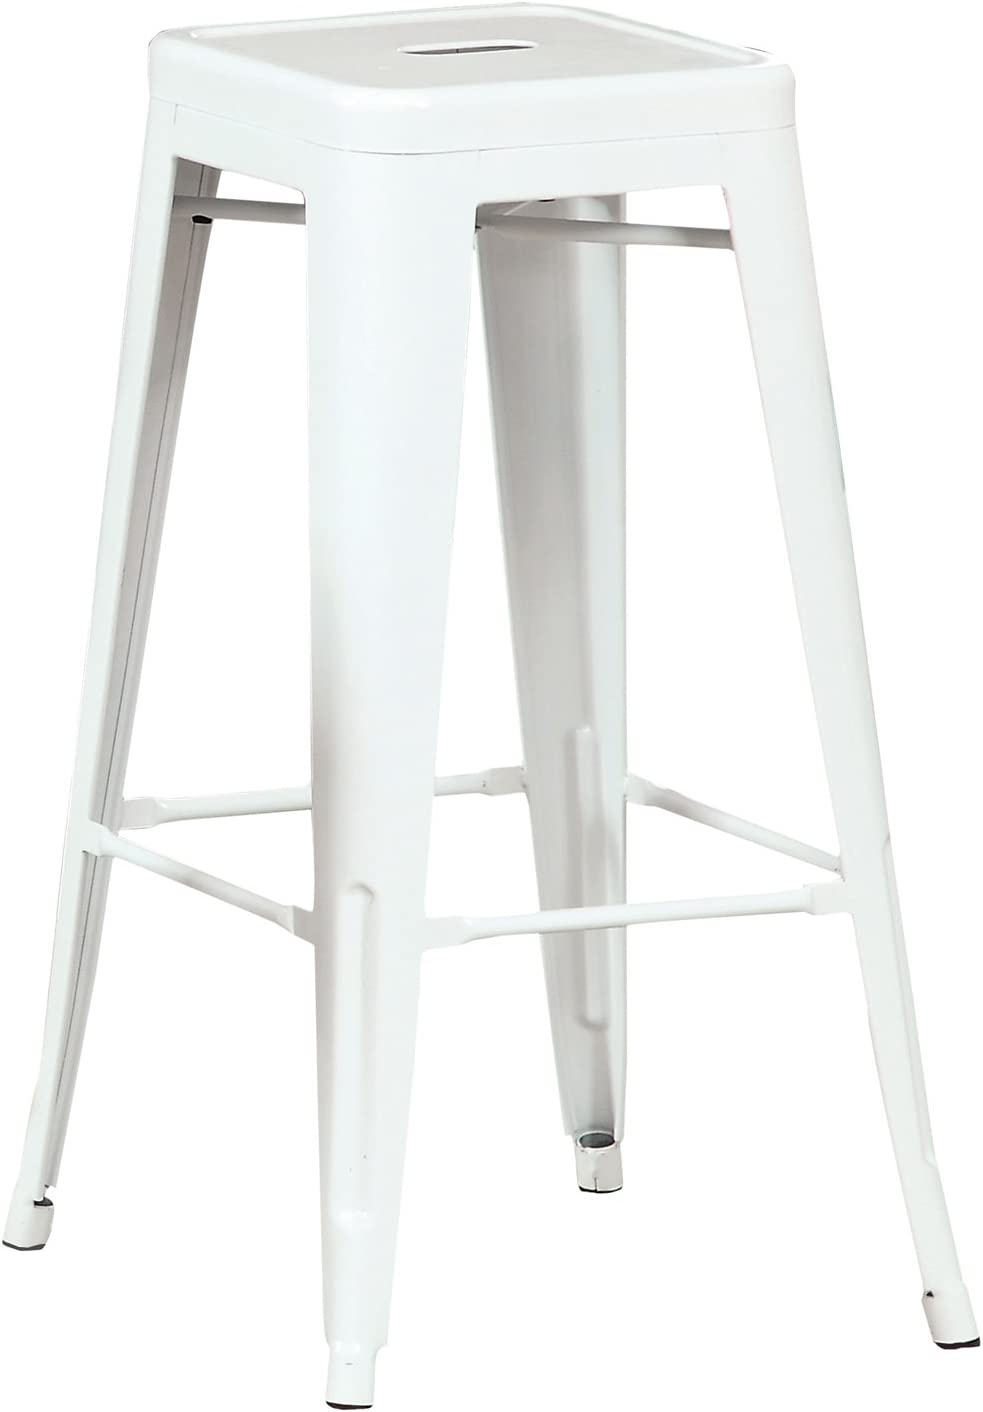 Furniture of America Karthe Modern Steel Stool, White, Set of 2